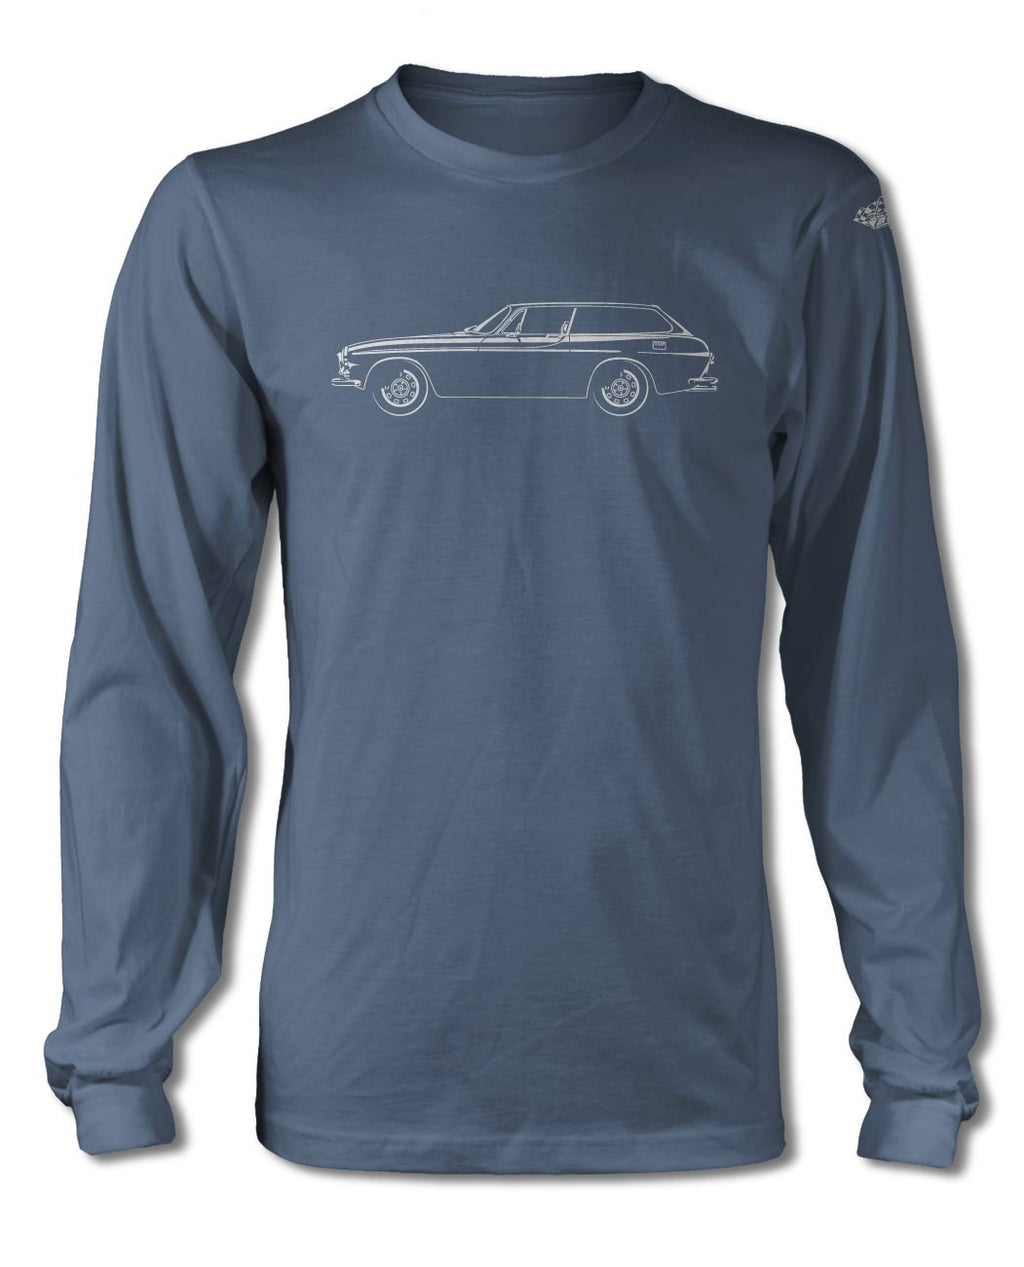 Volvo 1800ES Station Wagon T-Shirt - Long Sleeves - Side View